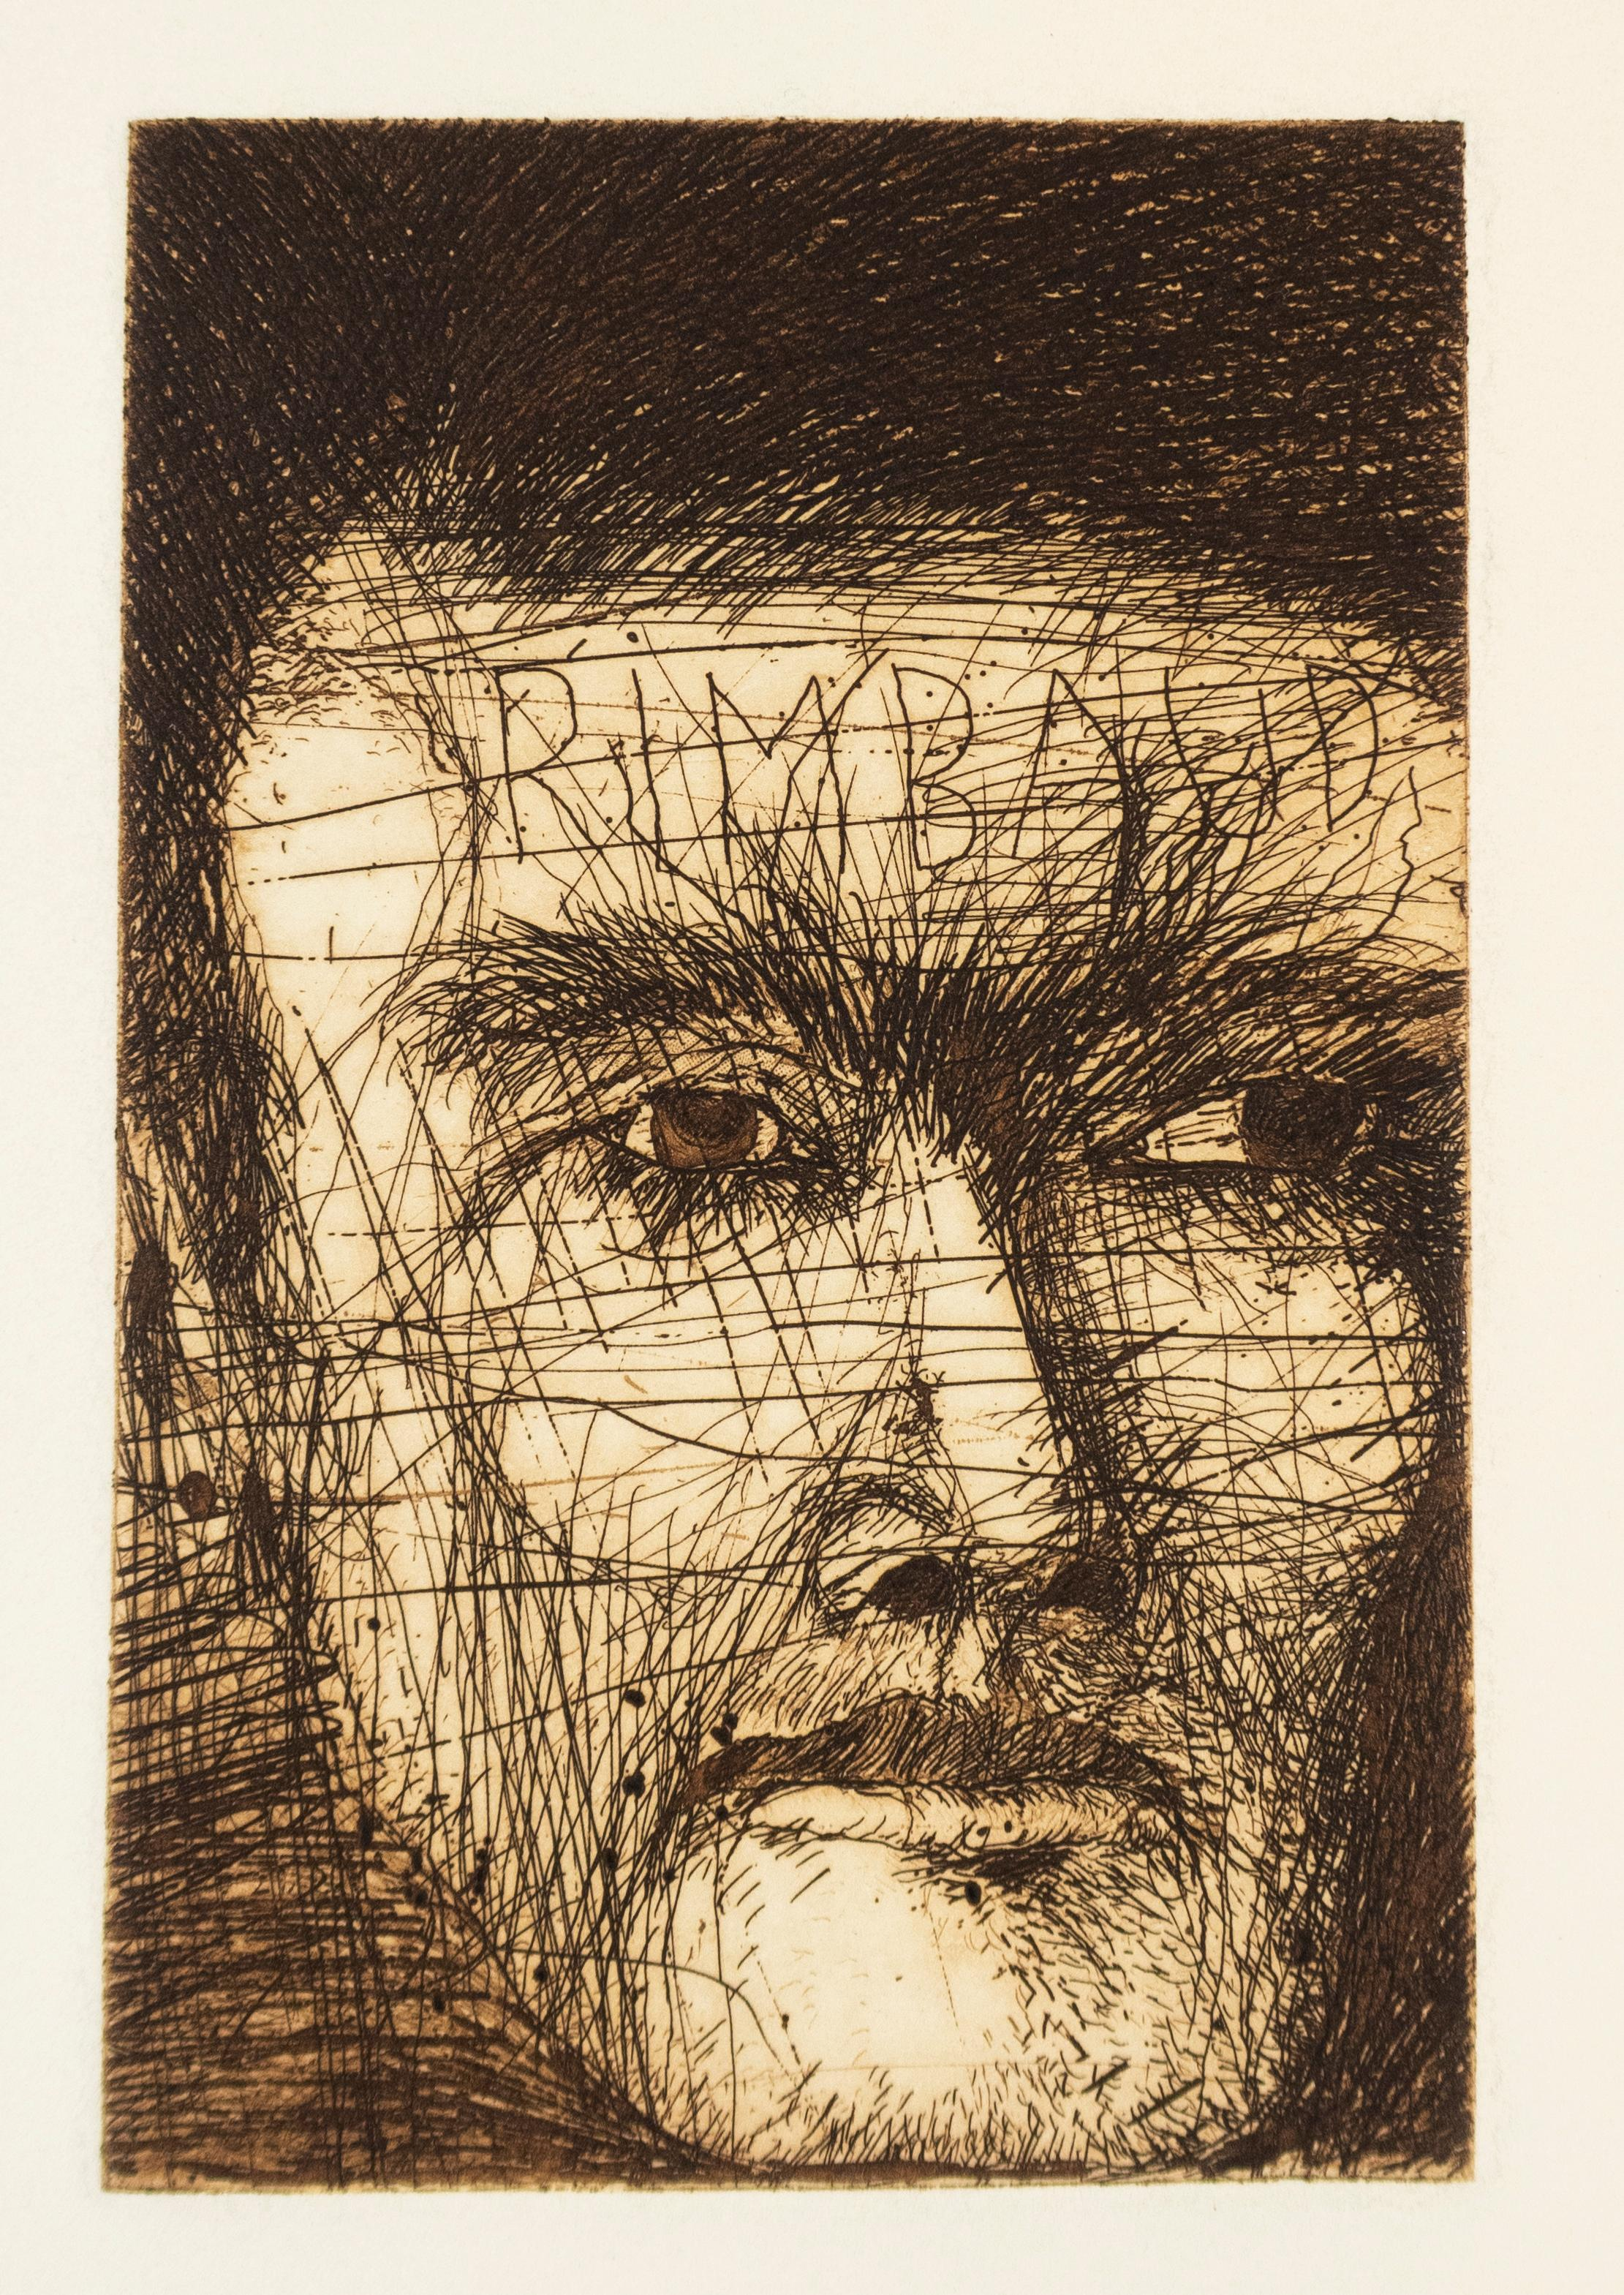 Jim Dine Rimbaud, the Coffee Exporter poet portrait drawing in earth tone sepia